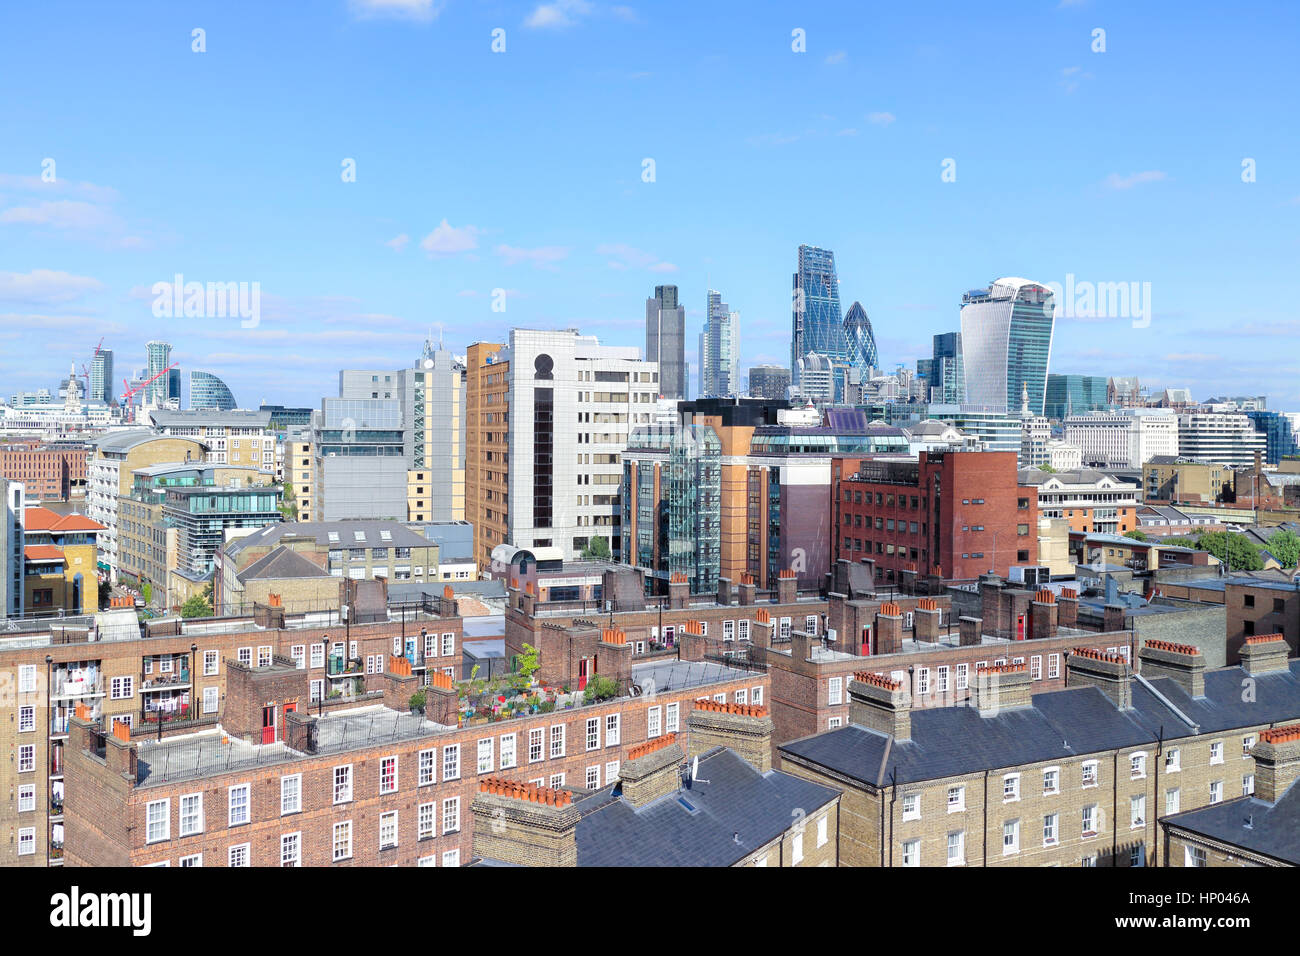 City of London skyline, over the roofs of houses in south bank, showing skyscrapers in a square mile in the distance - Stock Image